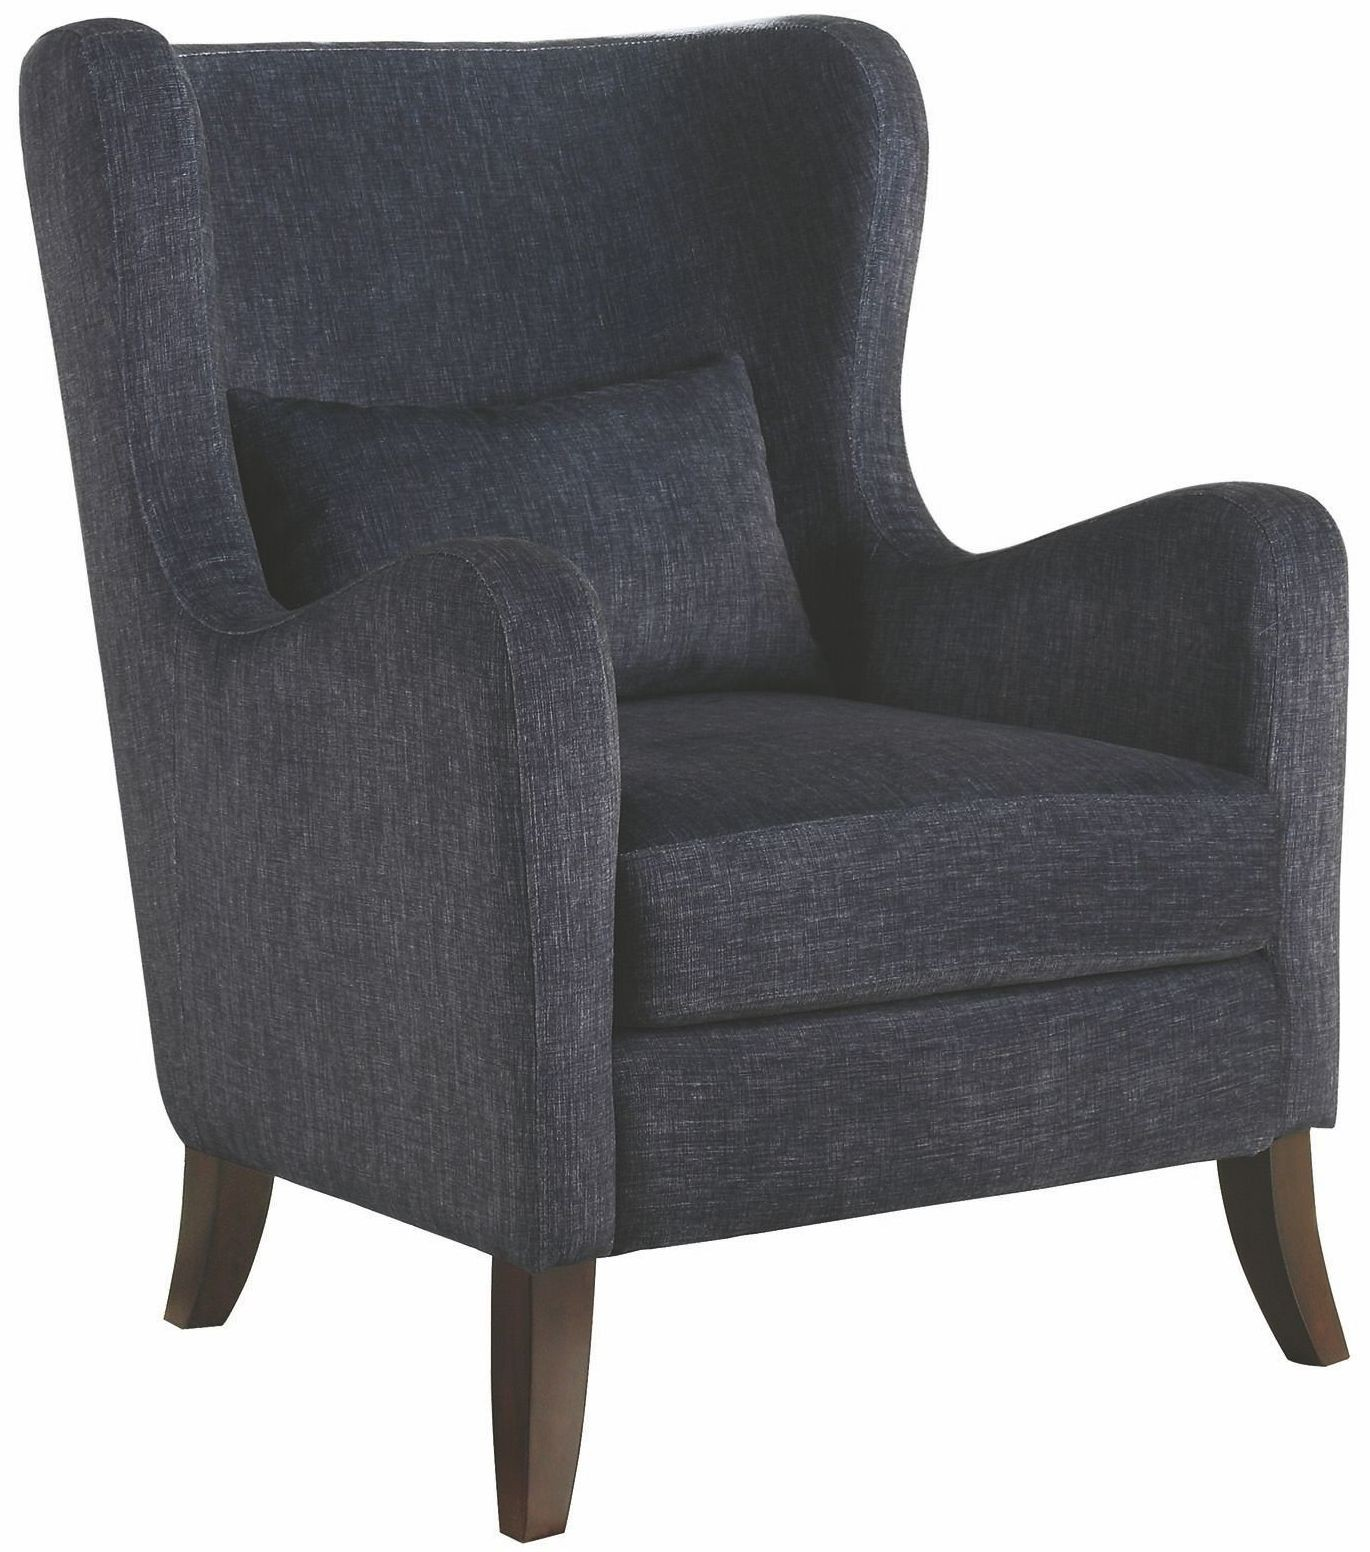 Indigo Accent Chair From Coaster Coleman Furniture